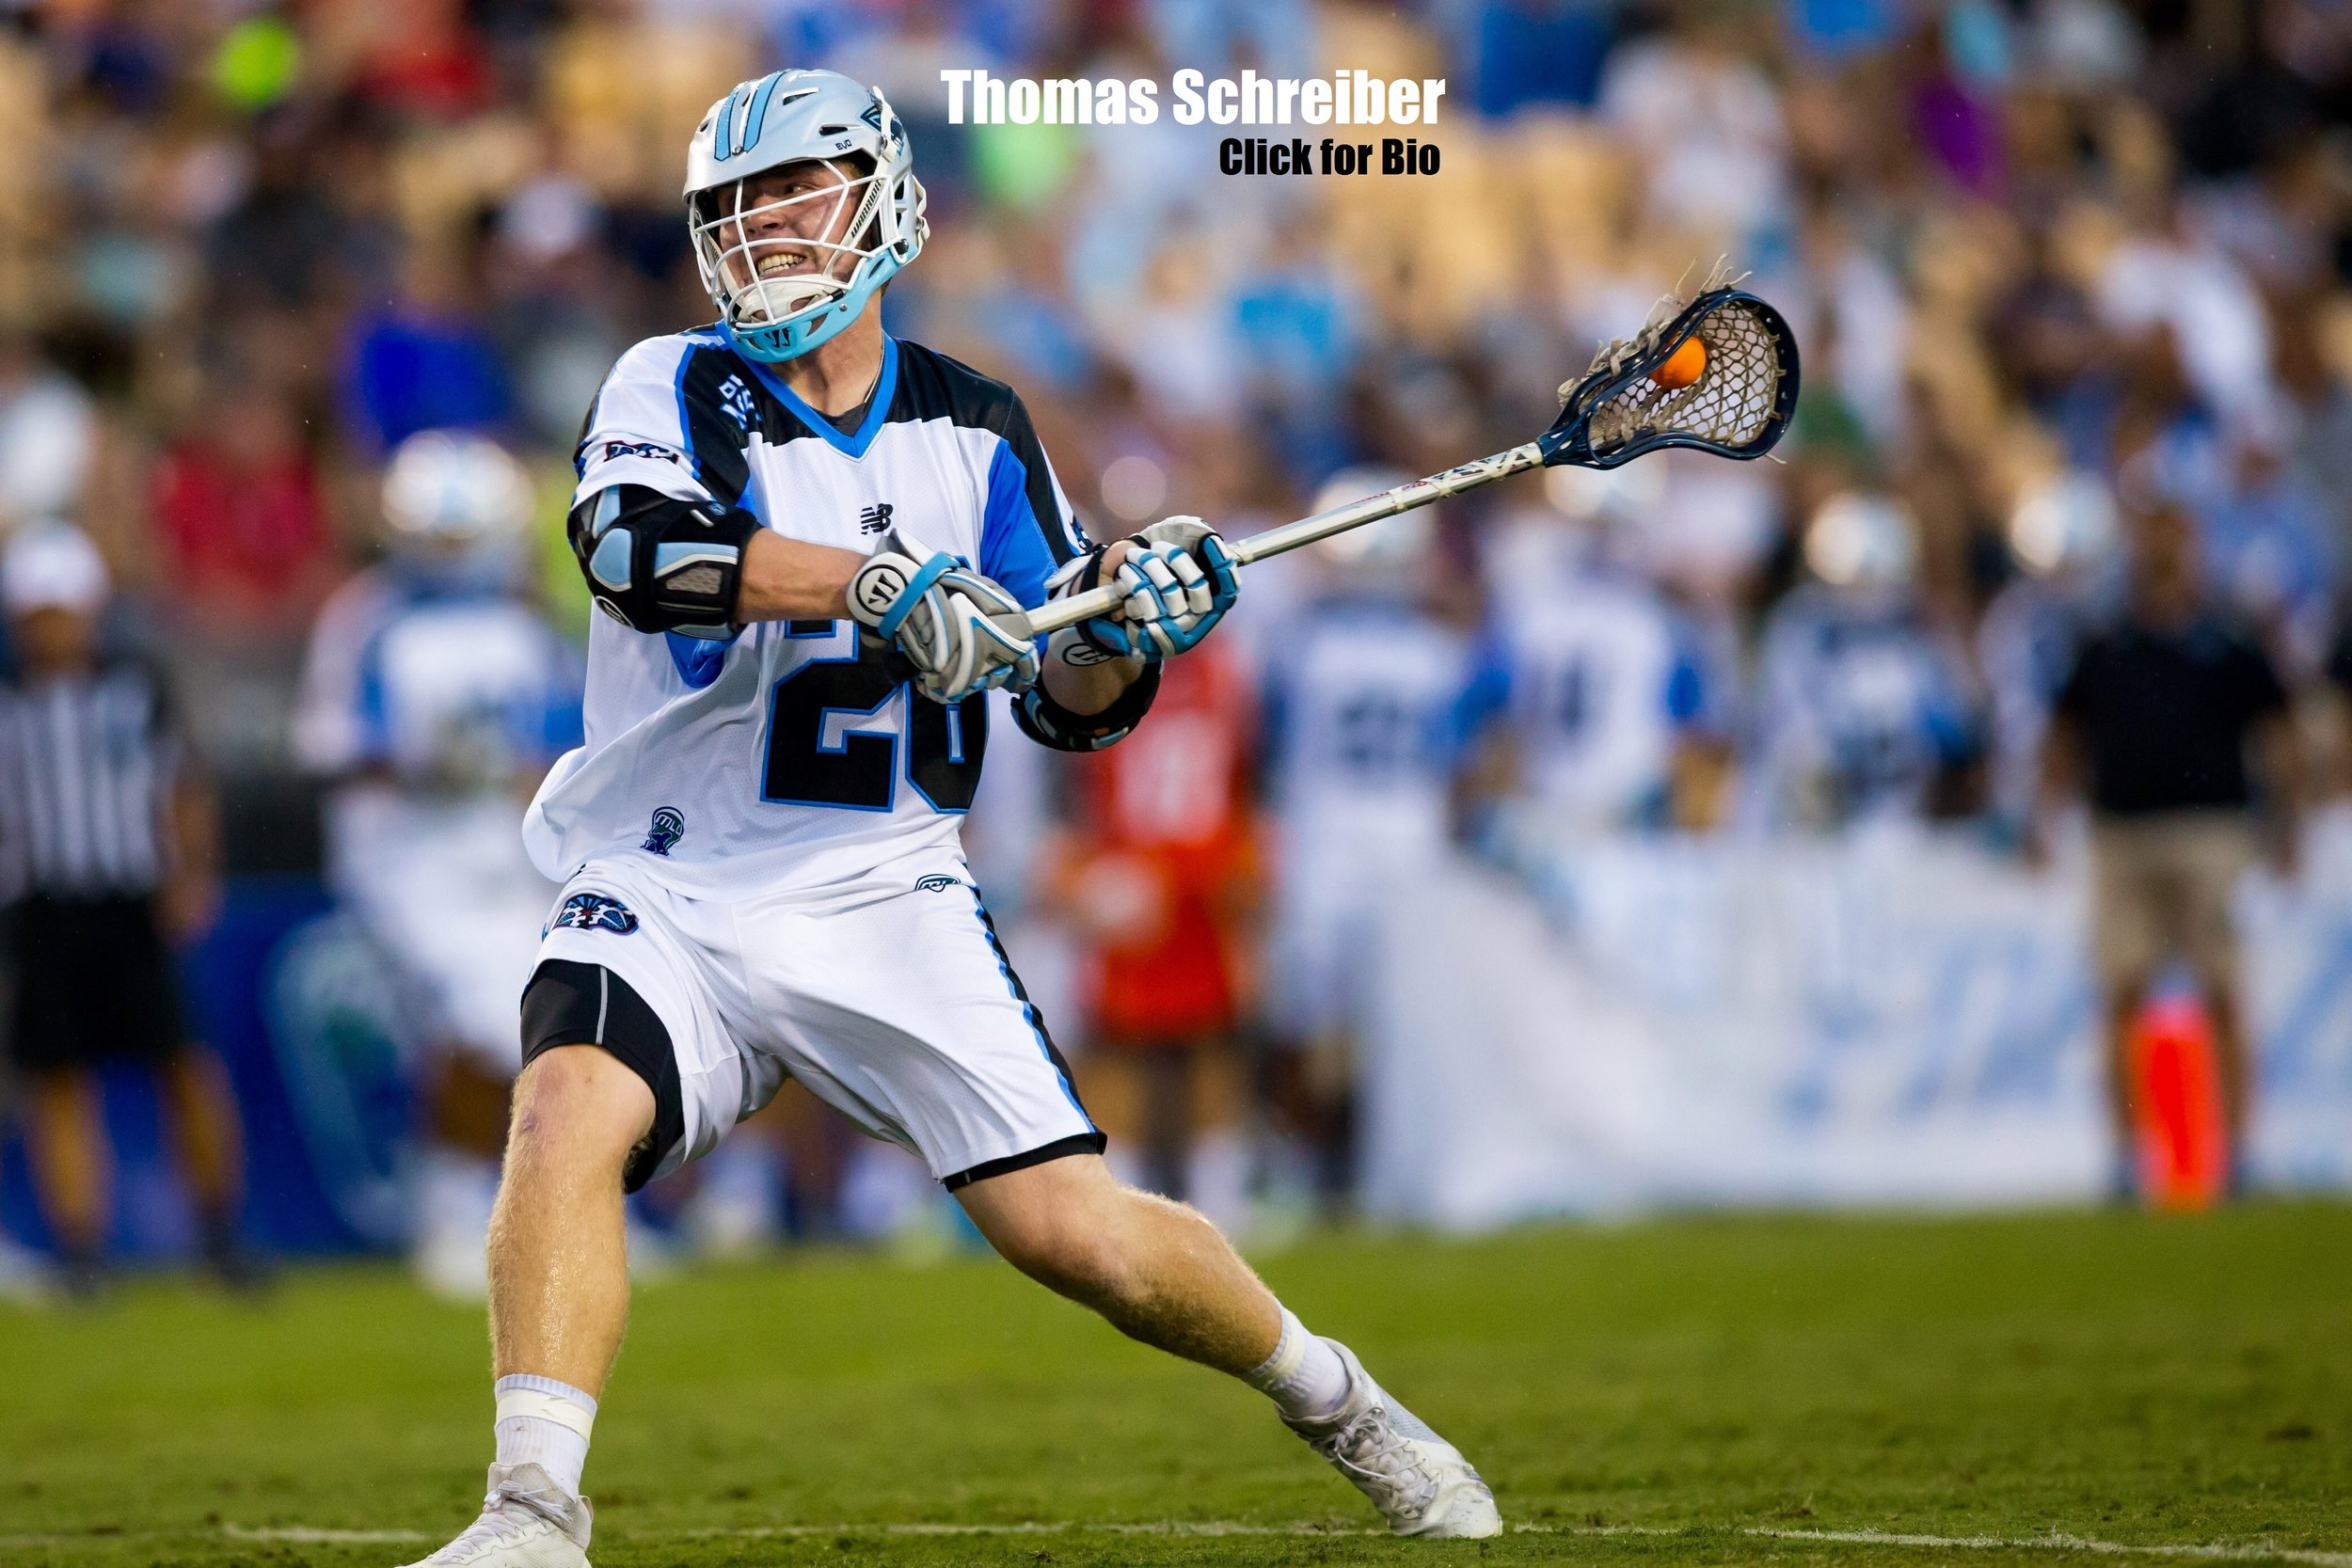 Thomas Schreiber  2016 Major League Lacrosse MVP  1st overall Draft Pick in MLL to the Ohio Machine  3-Time Finalist for the Tewaaraton Trophy (Division 1 Player of the Year)  2-Time Winner of Danald McLaughlin Award, given to Nation's top Midfielder  2 Time Capitan, 4 Time first team All-Ivy League  First Team All-American, 2014, 2013, and 2012 (3rd team 2011)  All-Time Points Leader (most goals & assist) for midfielders in Princeton history